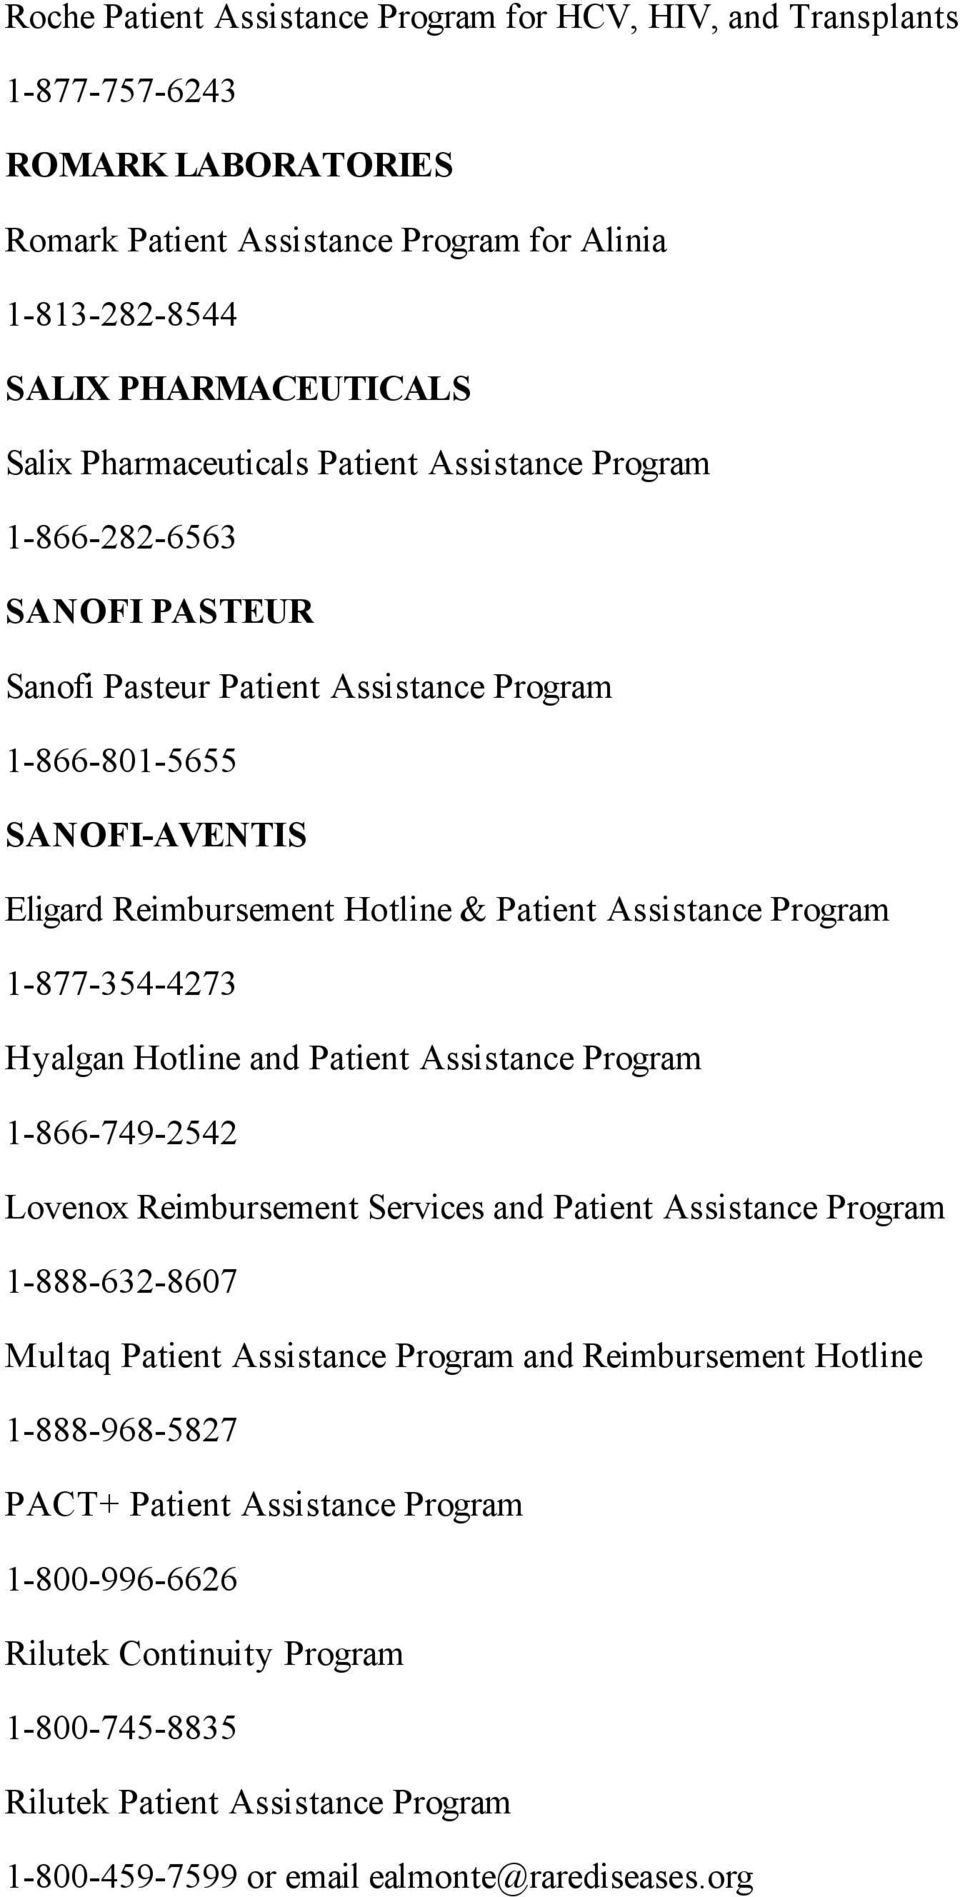 Program 1-877-354-4273 Hyalgan Hotline and Patient Assistance Program 1-866-749-2542 Lovenox Reimbursement Services and Patient Assistance Program 1-888-632-8607 Multaq Patient Assistance Program